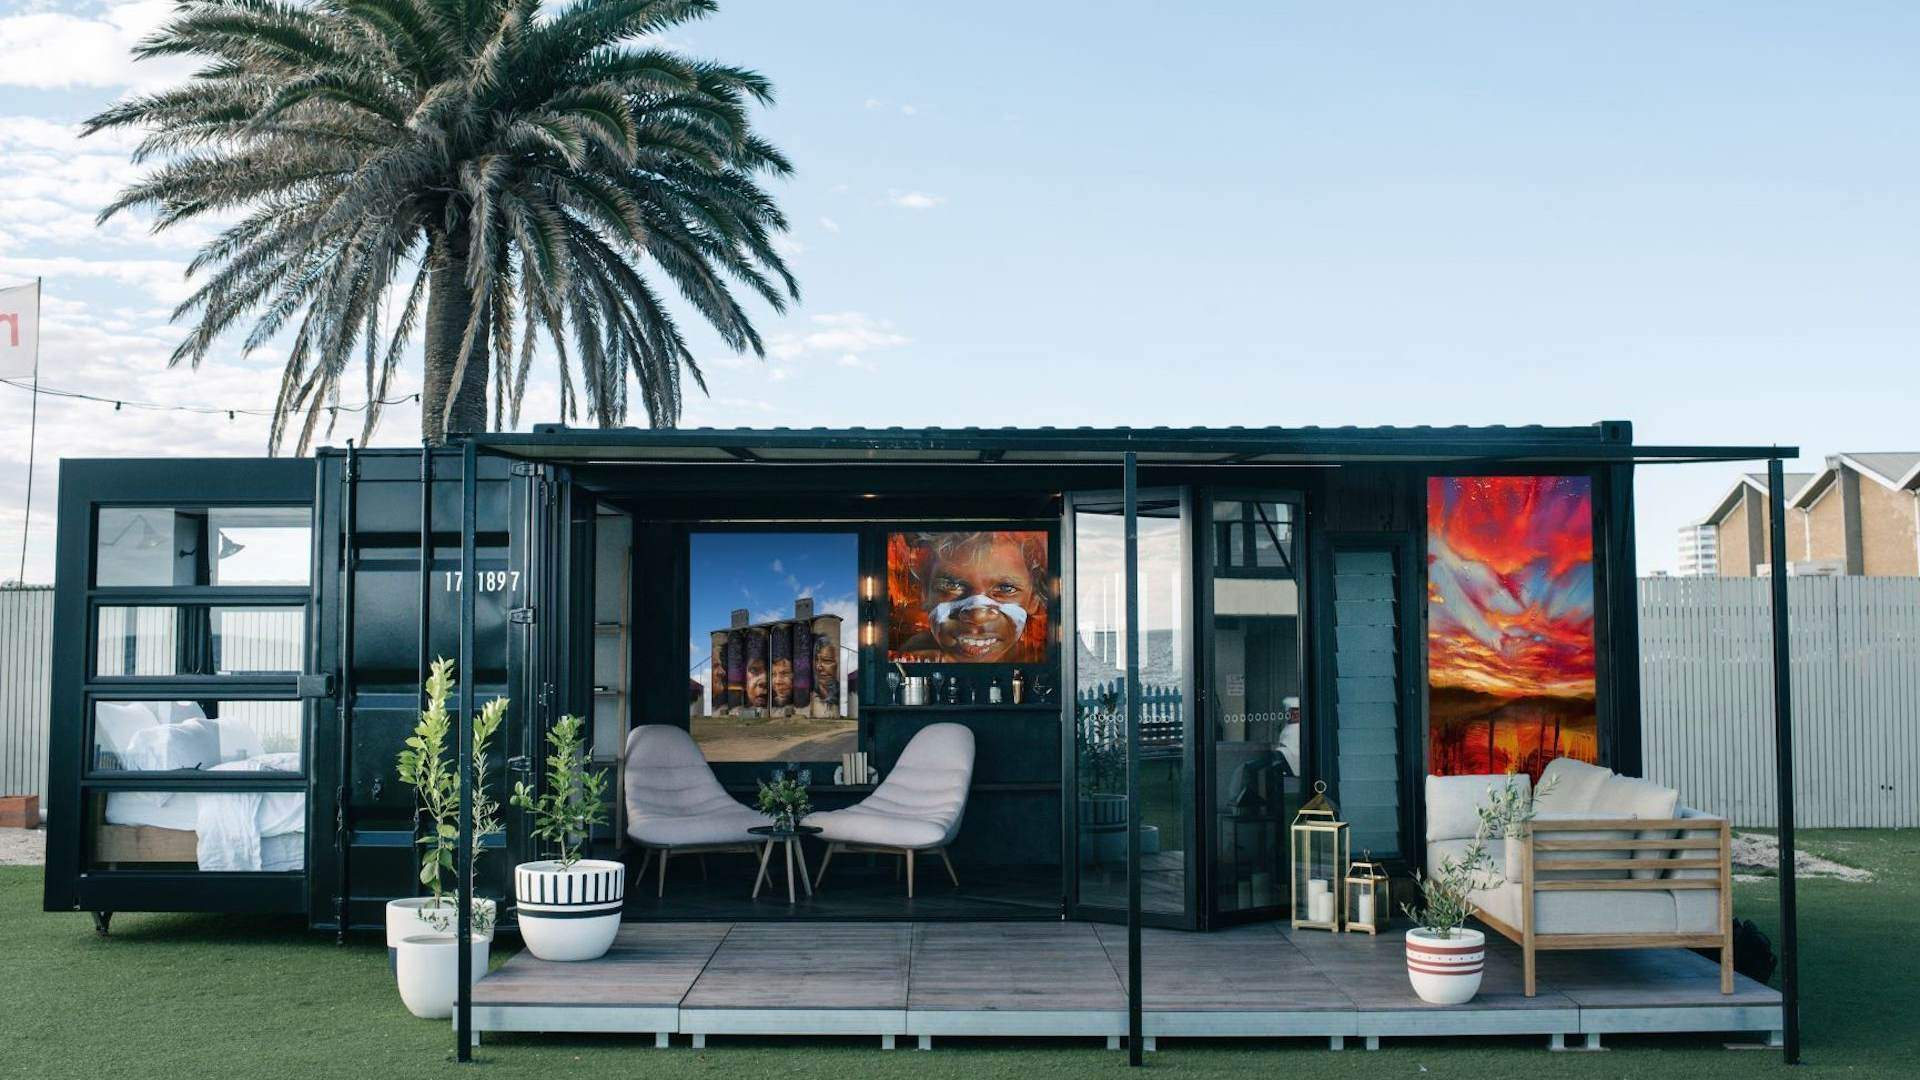 Victoria's Silo Art Trail Will Boast Two Street Art-Themed, Shipping Container Hotels